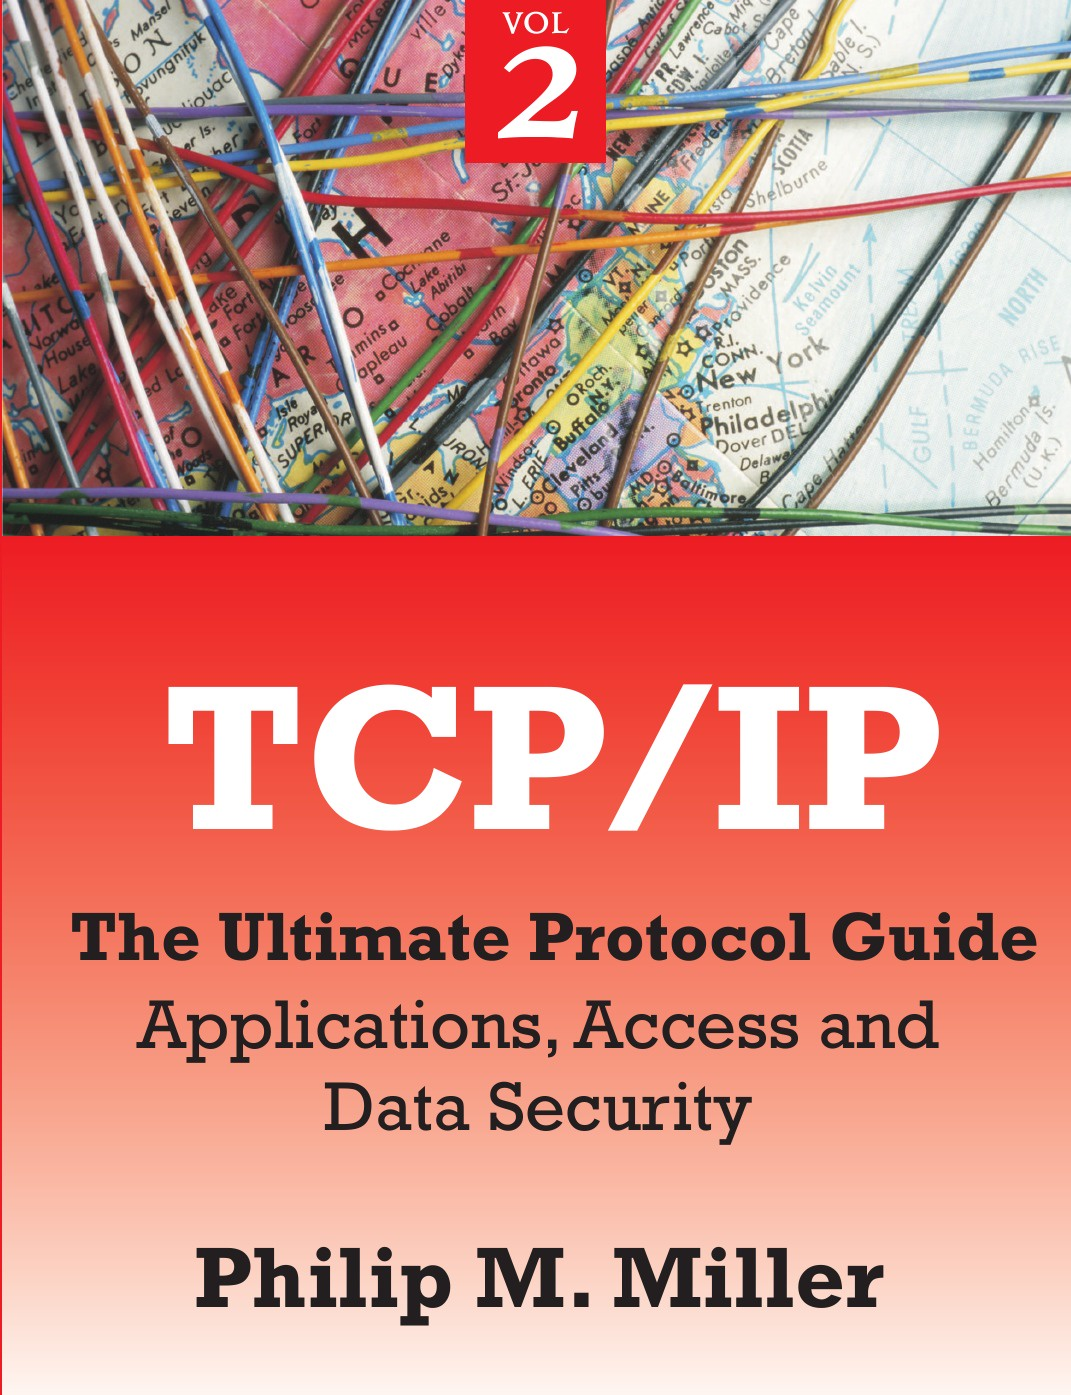 Philip M. Miller TCP/IP - The Ultimate Protocol Guide. Volume 2 - Applications, Access and Data Security